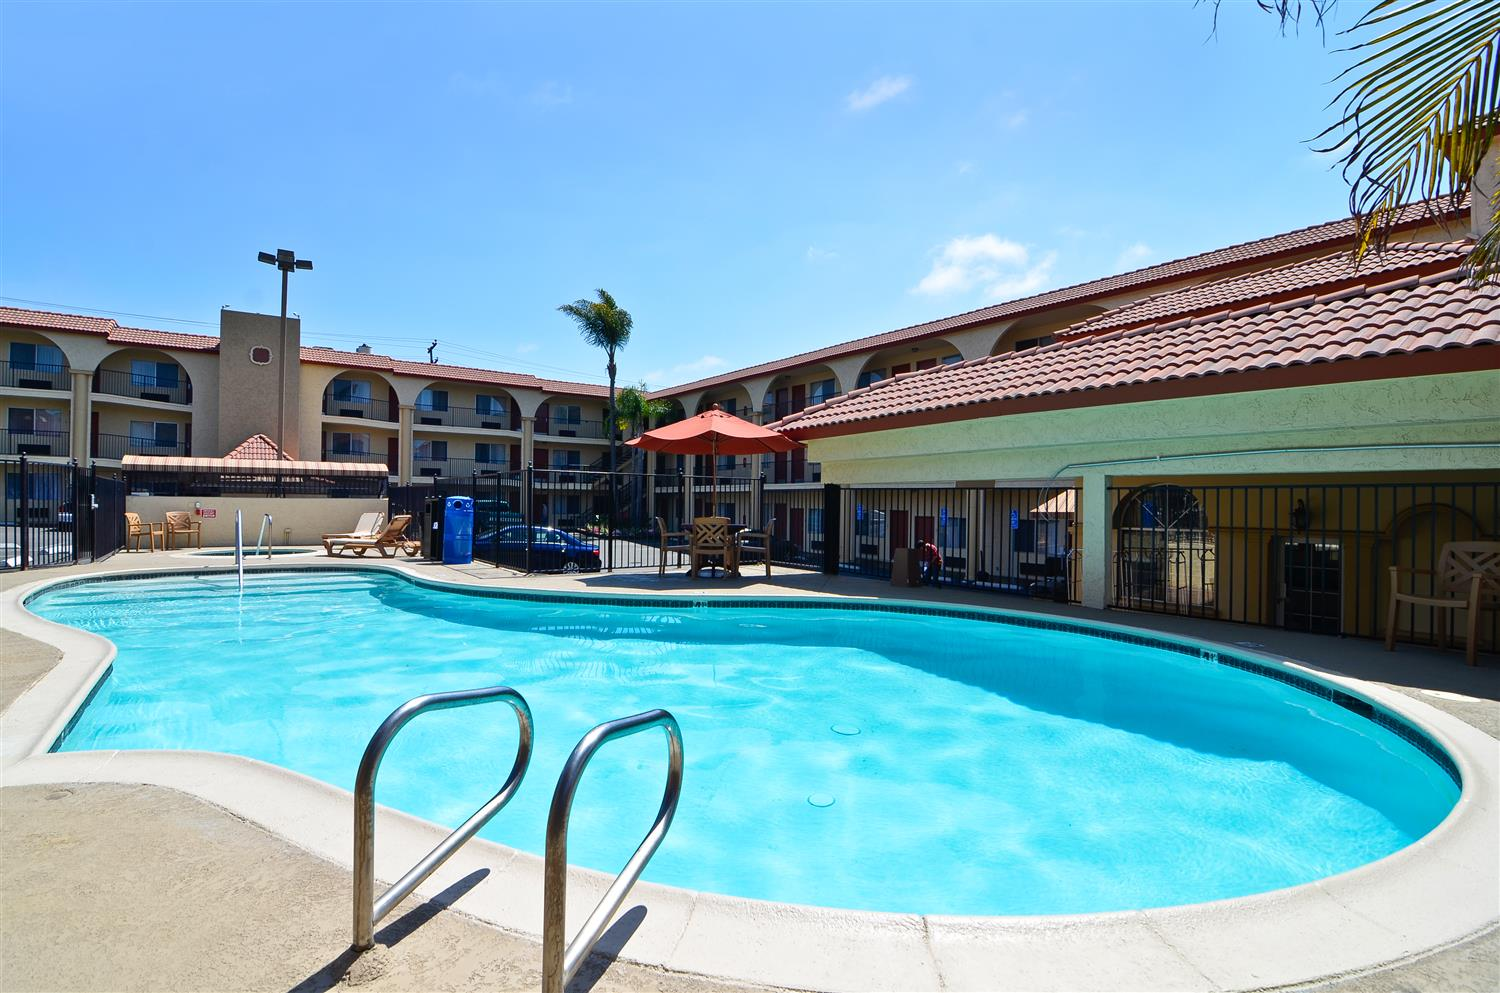 Best Western Seven Seas: A Value Hotel in Mission Valley ...